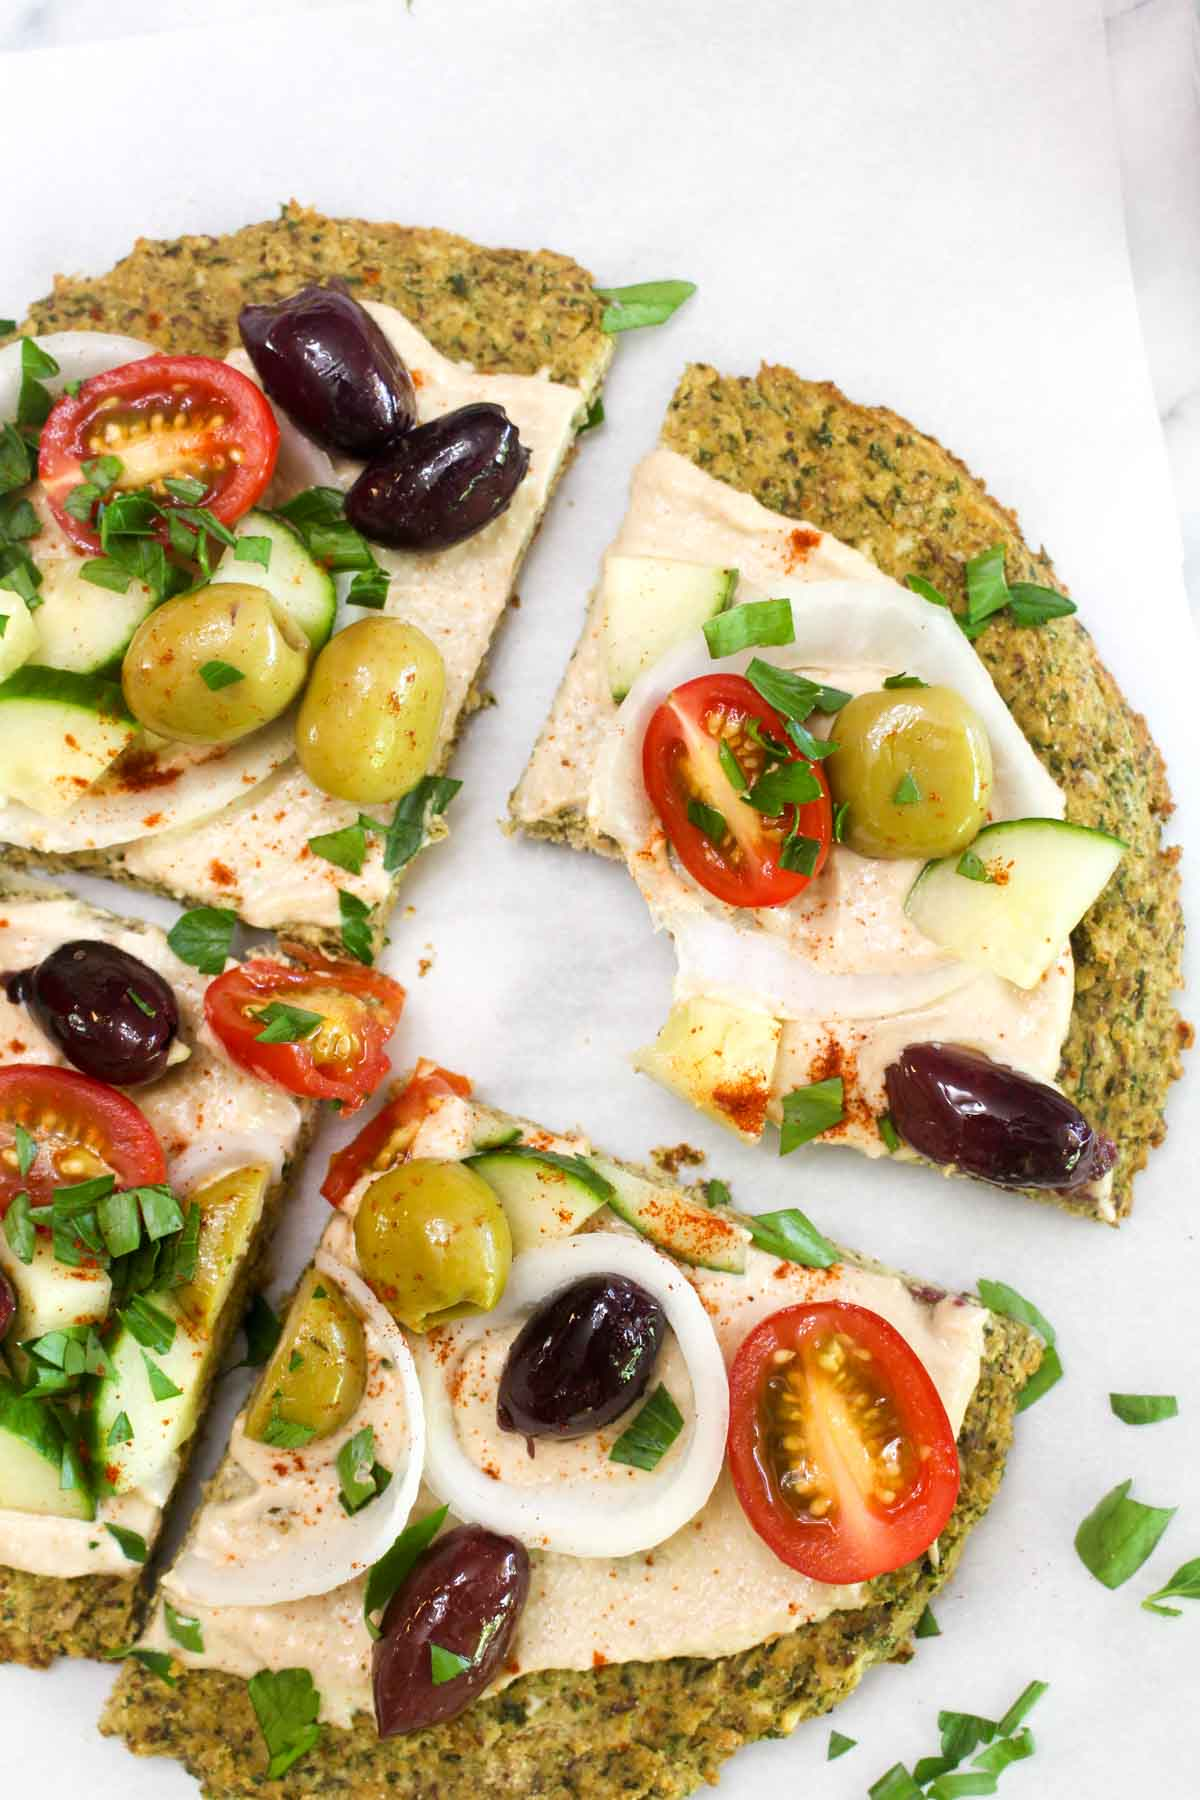 A a closeup of a slice of falafel crust topped with hummus, olives, onion, tomatoes, and parsley with a bite out of it.